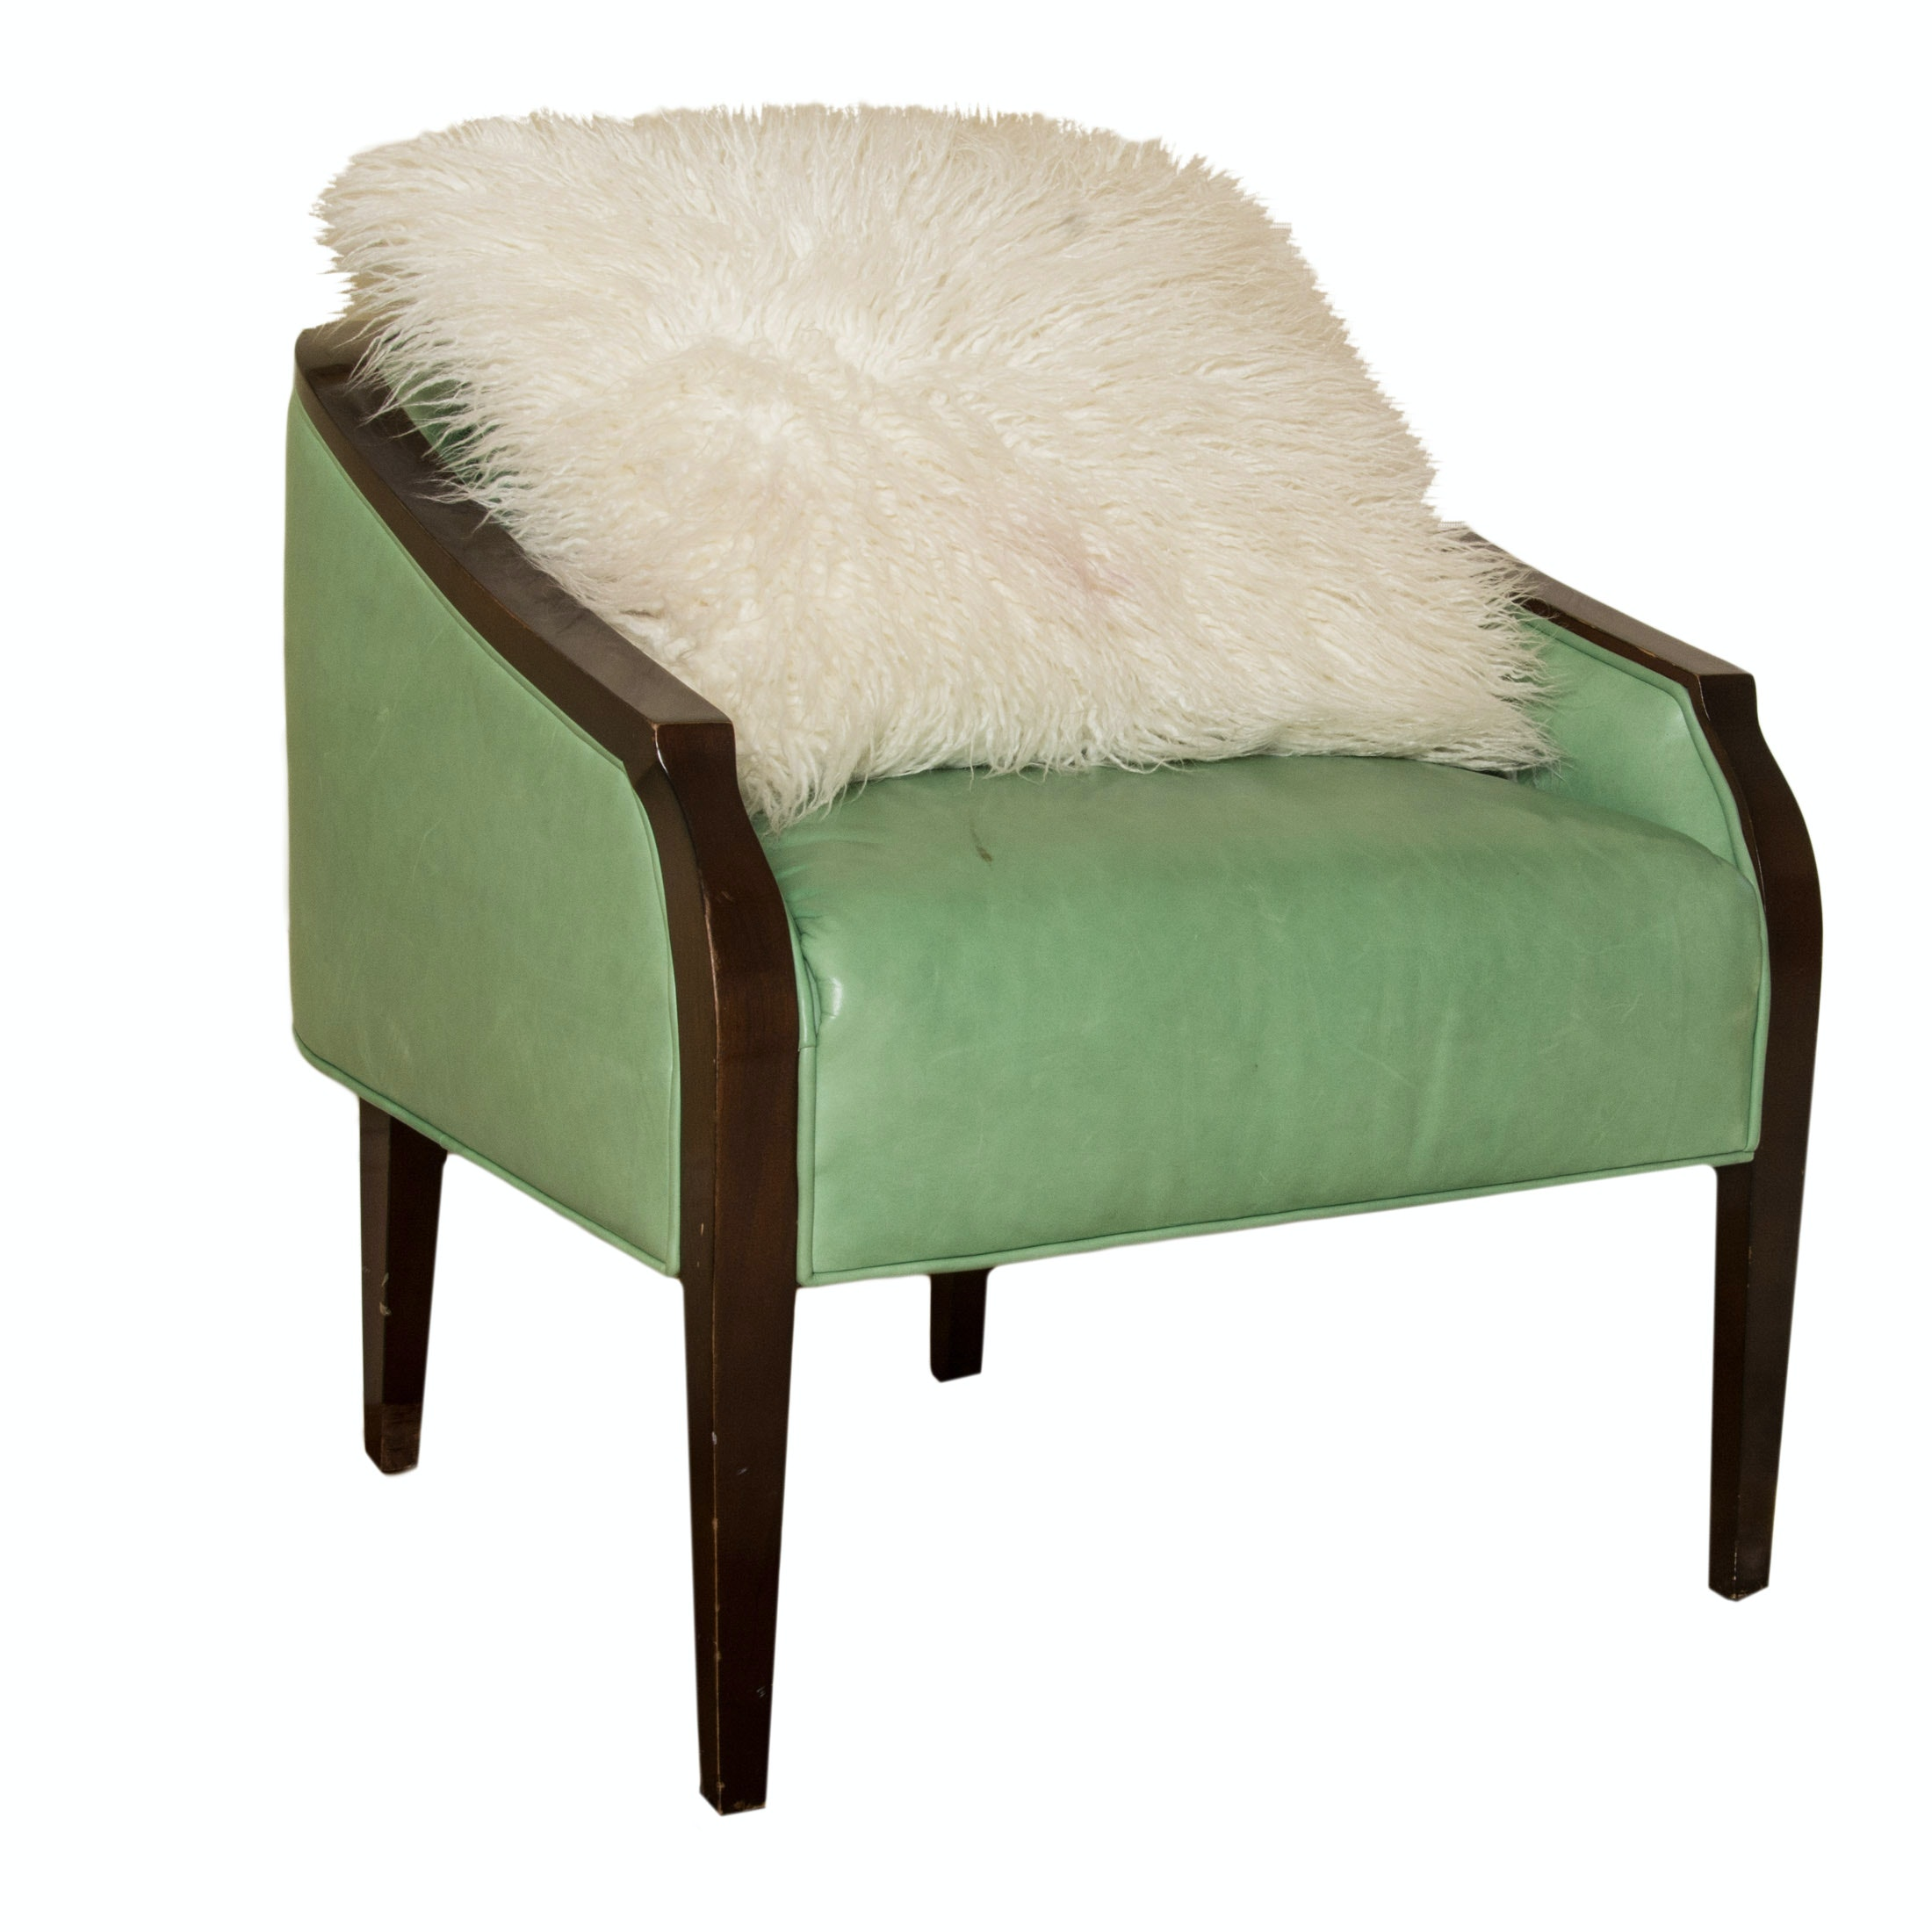 Mint Green Leather Club Chair By Baker Furniture ...